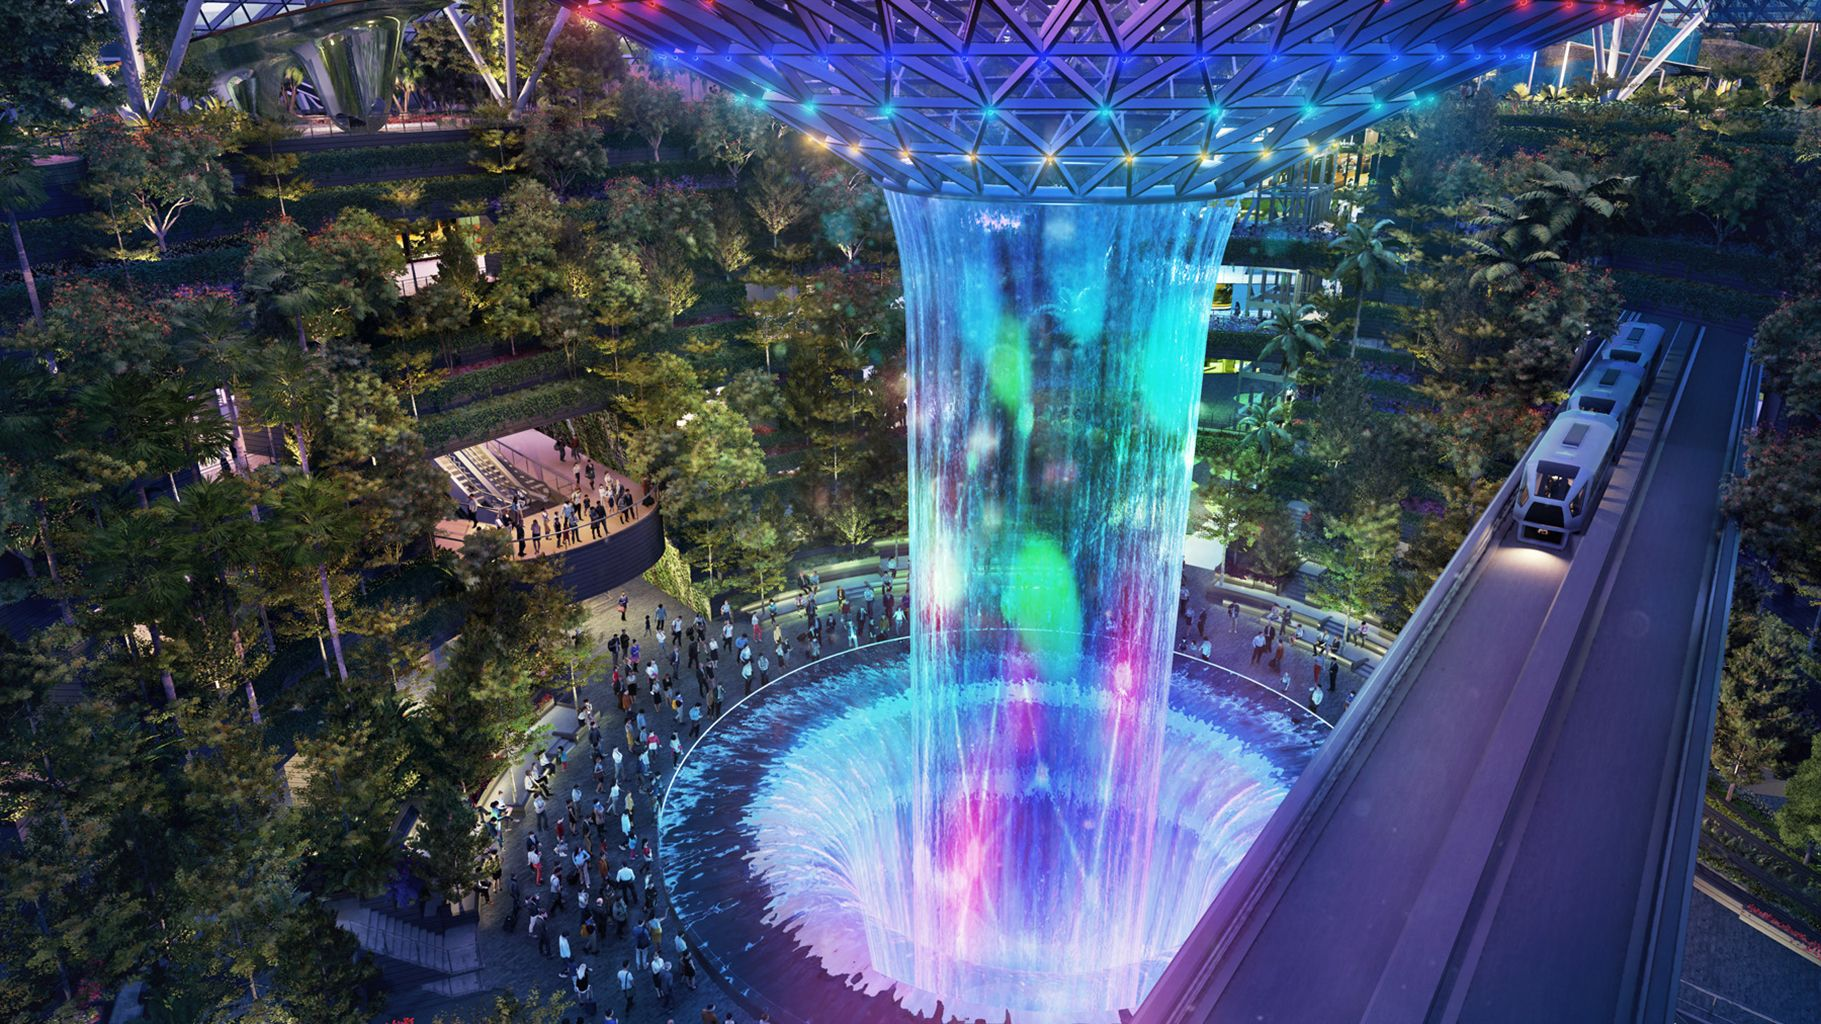 Changi Airport To Build New 'Canopy Park'